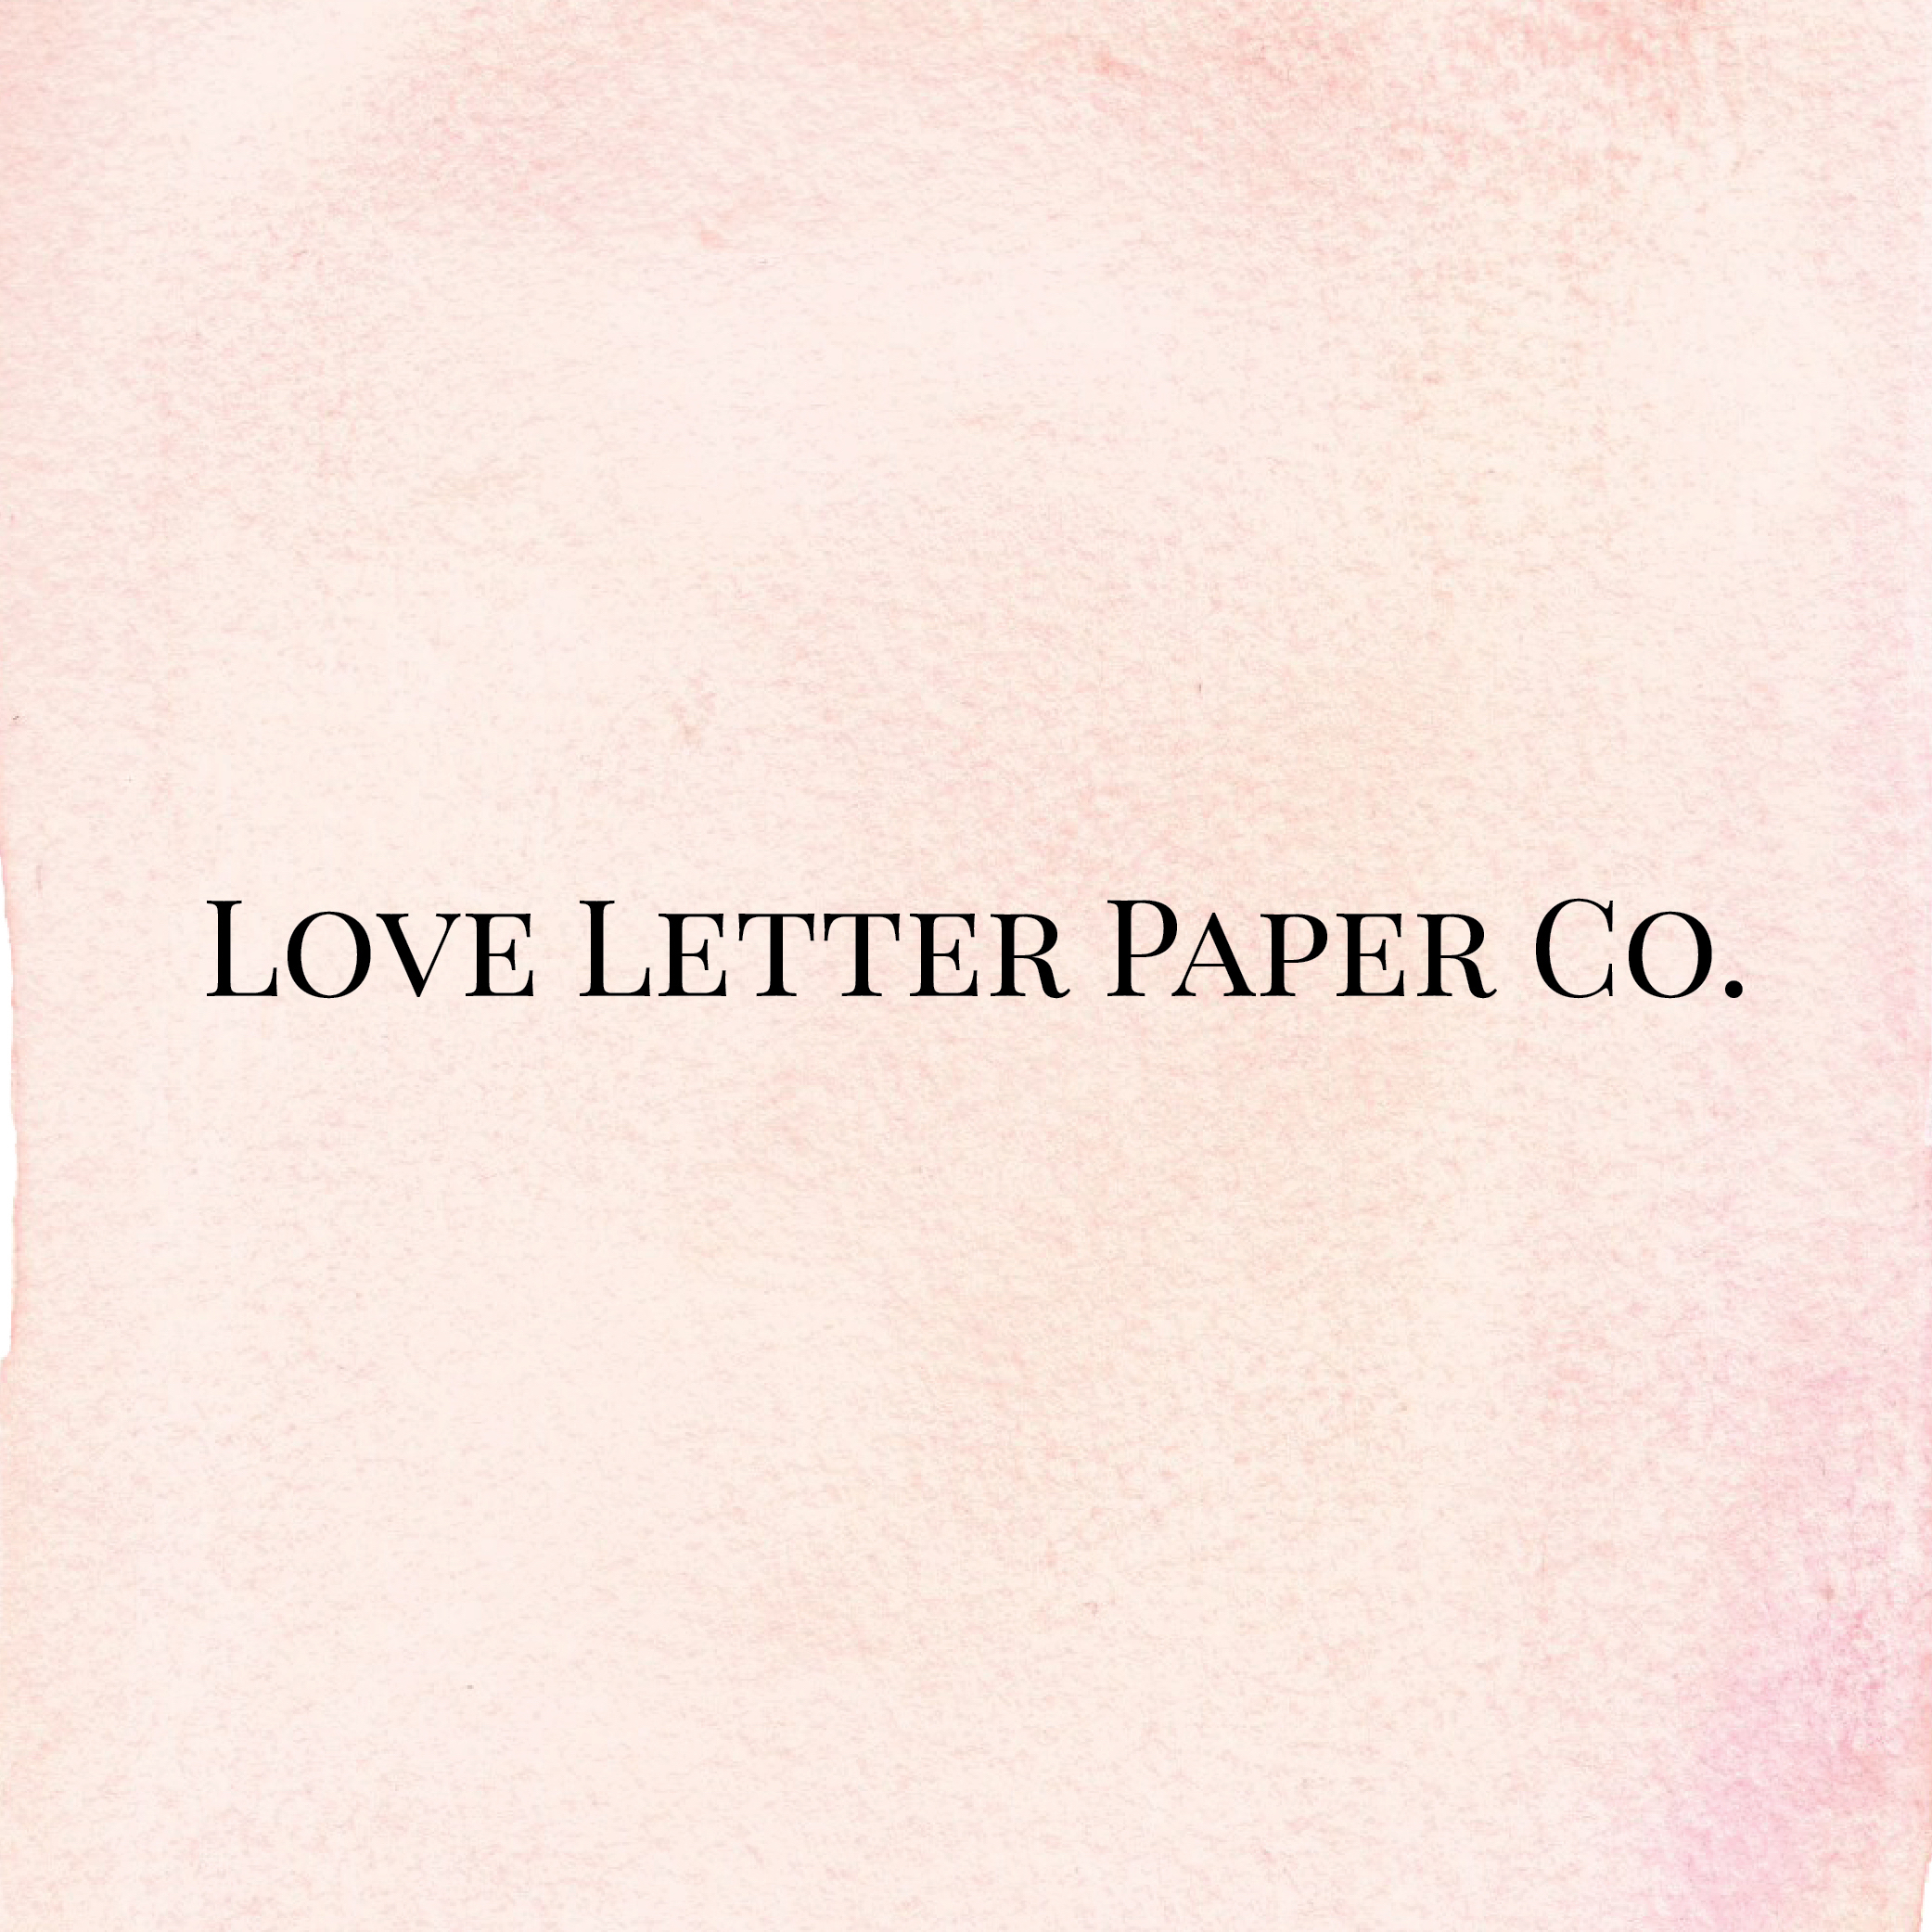 SHF_-_2018_-_Vendor_-_Stationery_-_Love_Letter.jpg